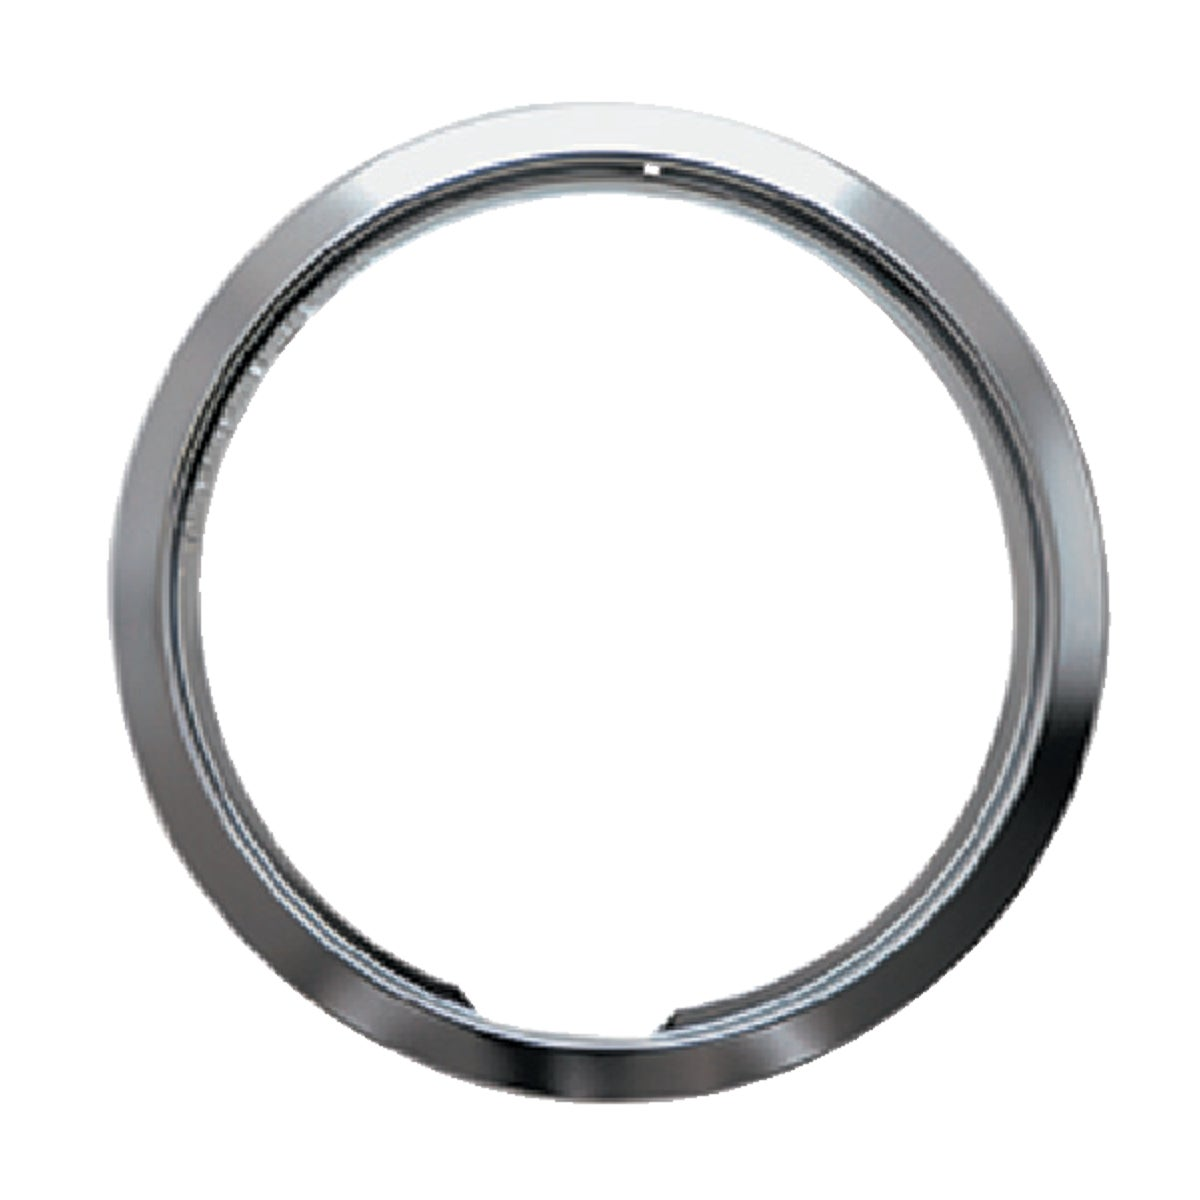 "6"" CHROME TRIM RING - R6-GE by Range Kleen Mfg Inc"